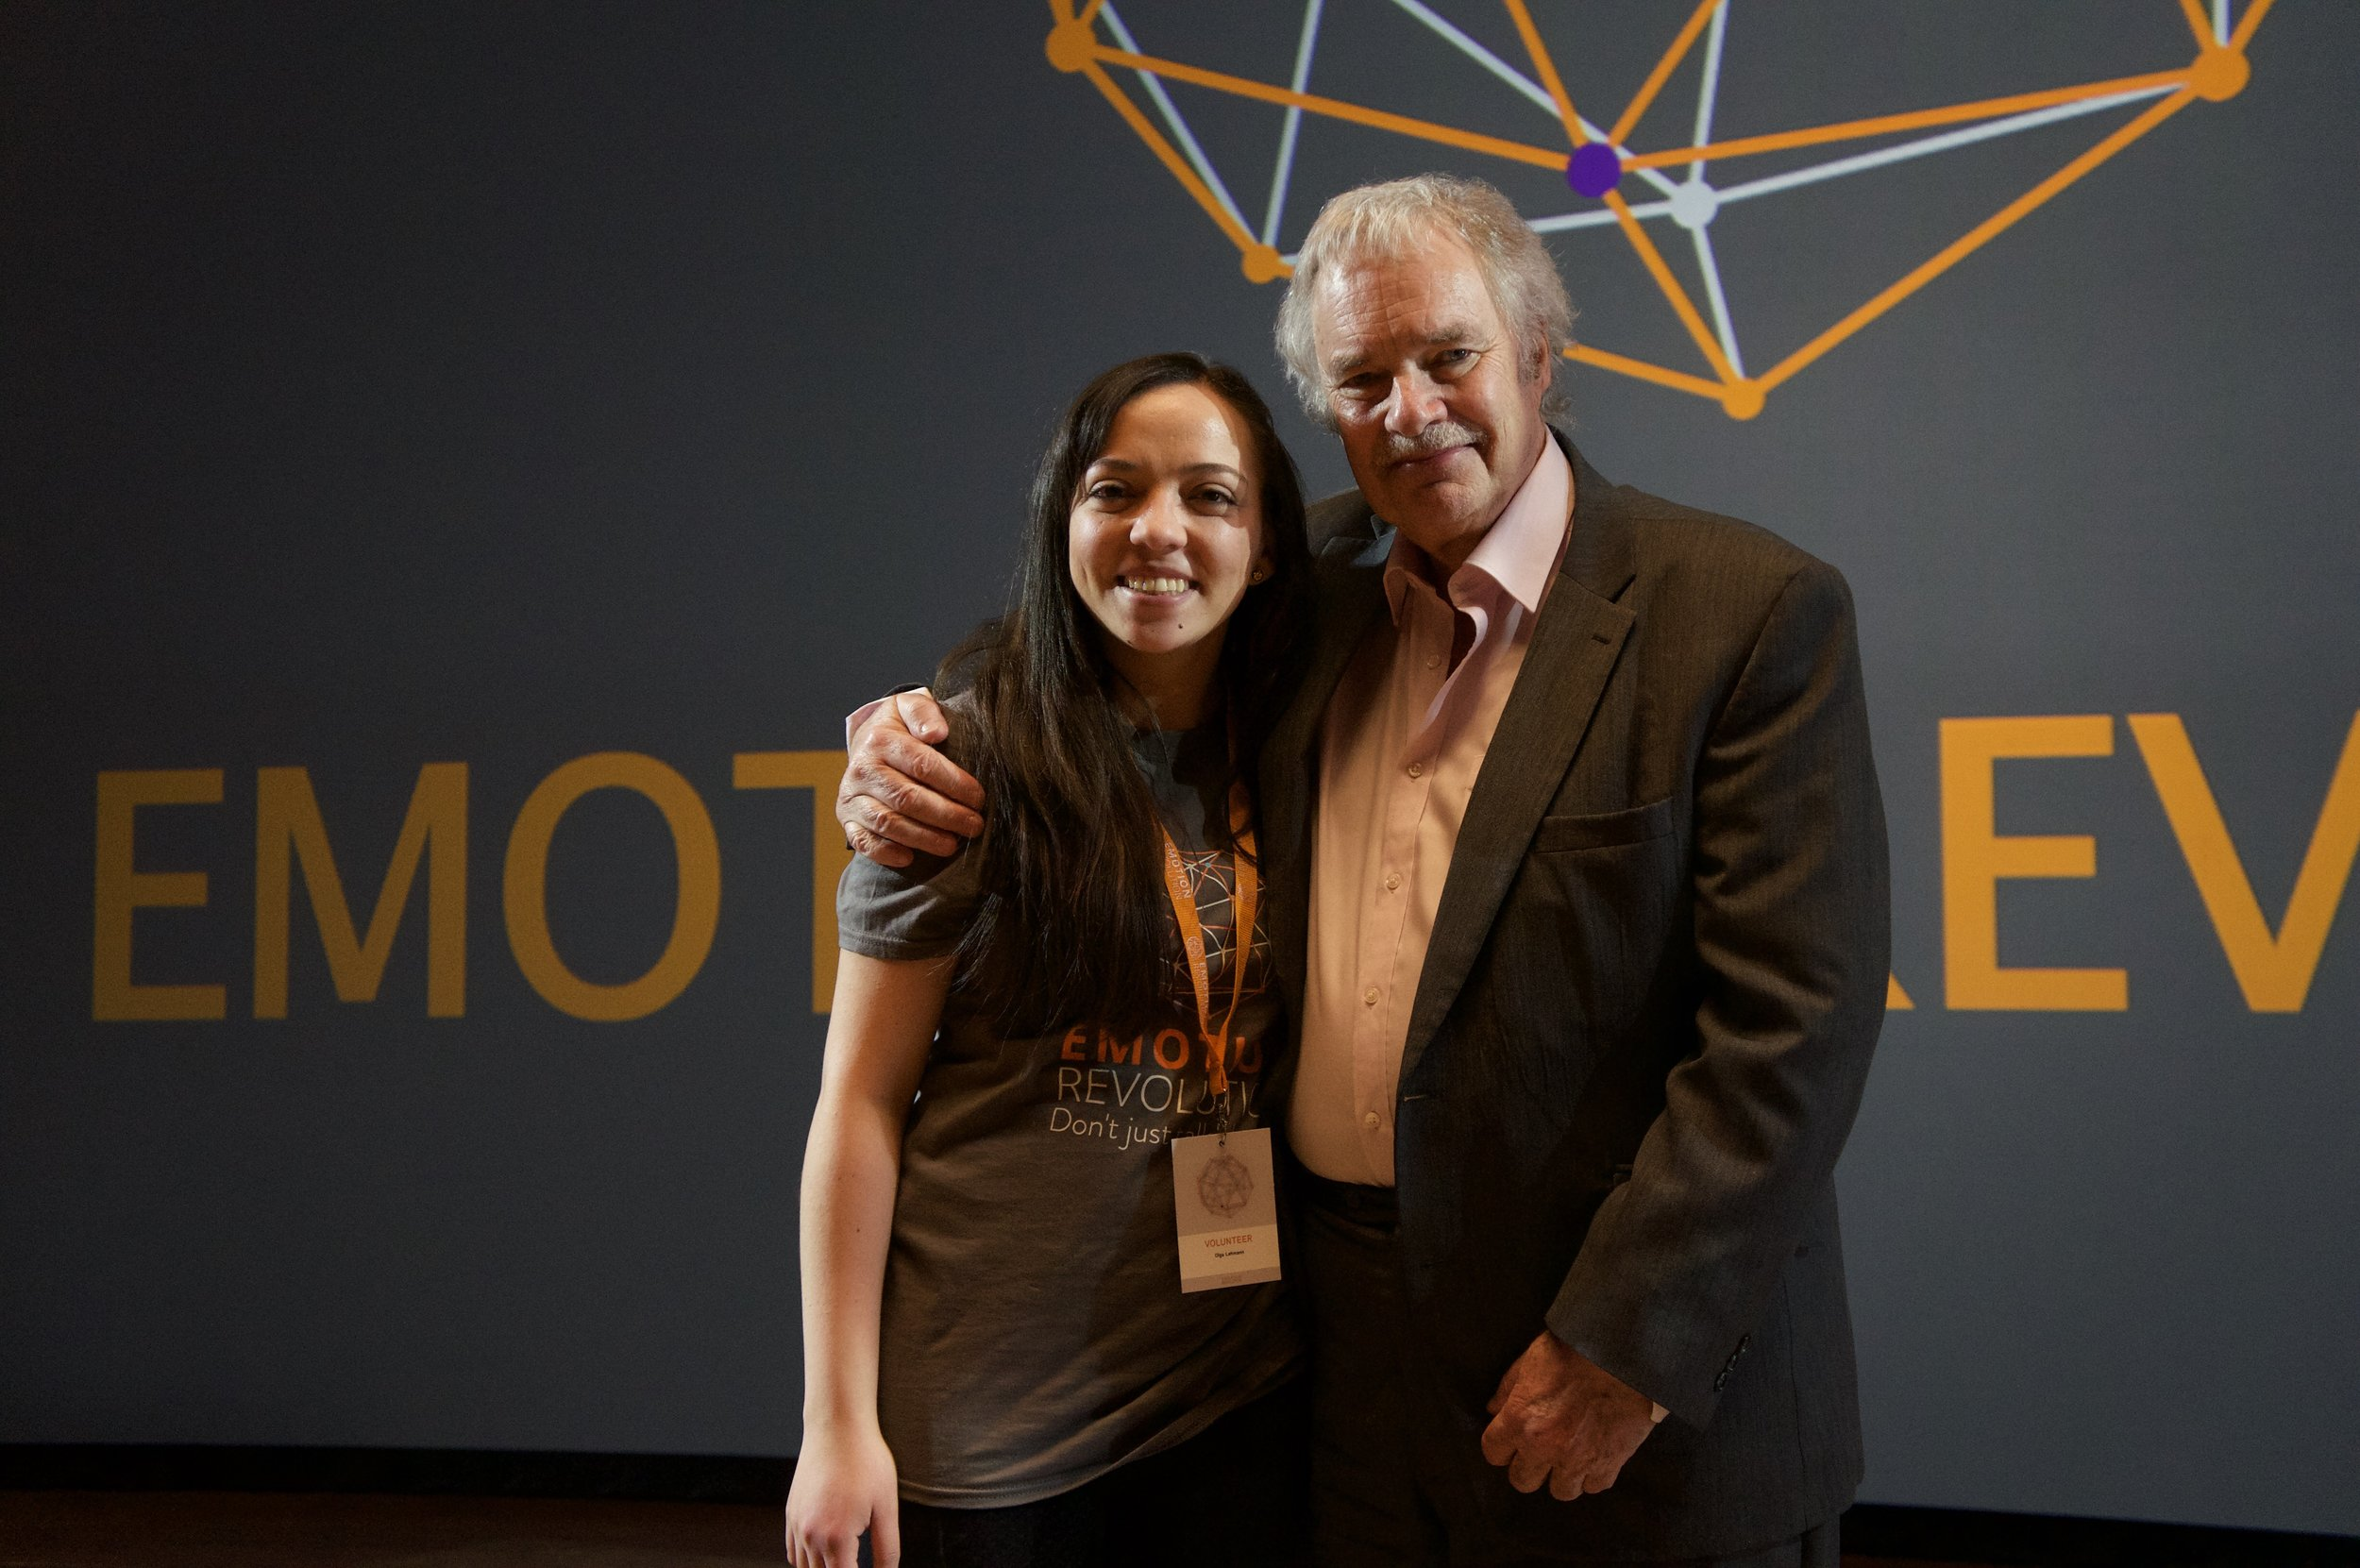 Olga—Head (and heart) of Health and Compassionate Practices at Pracademy— volunteered at the Emotion Revolution Conference in Bergen (2018). She was responsible for coordination during Paul Gilbert's deepening workshop on Compassion-Focused Therapy.